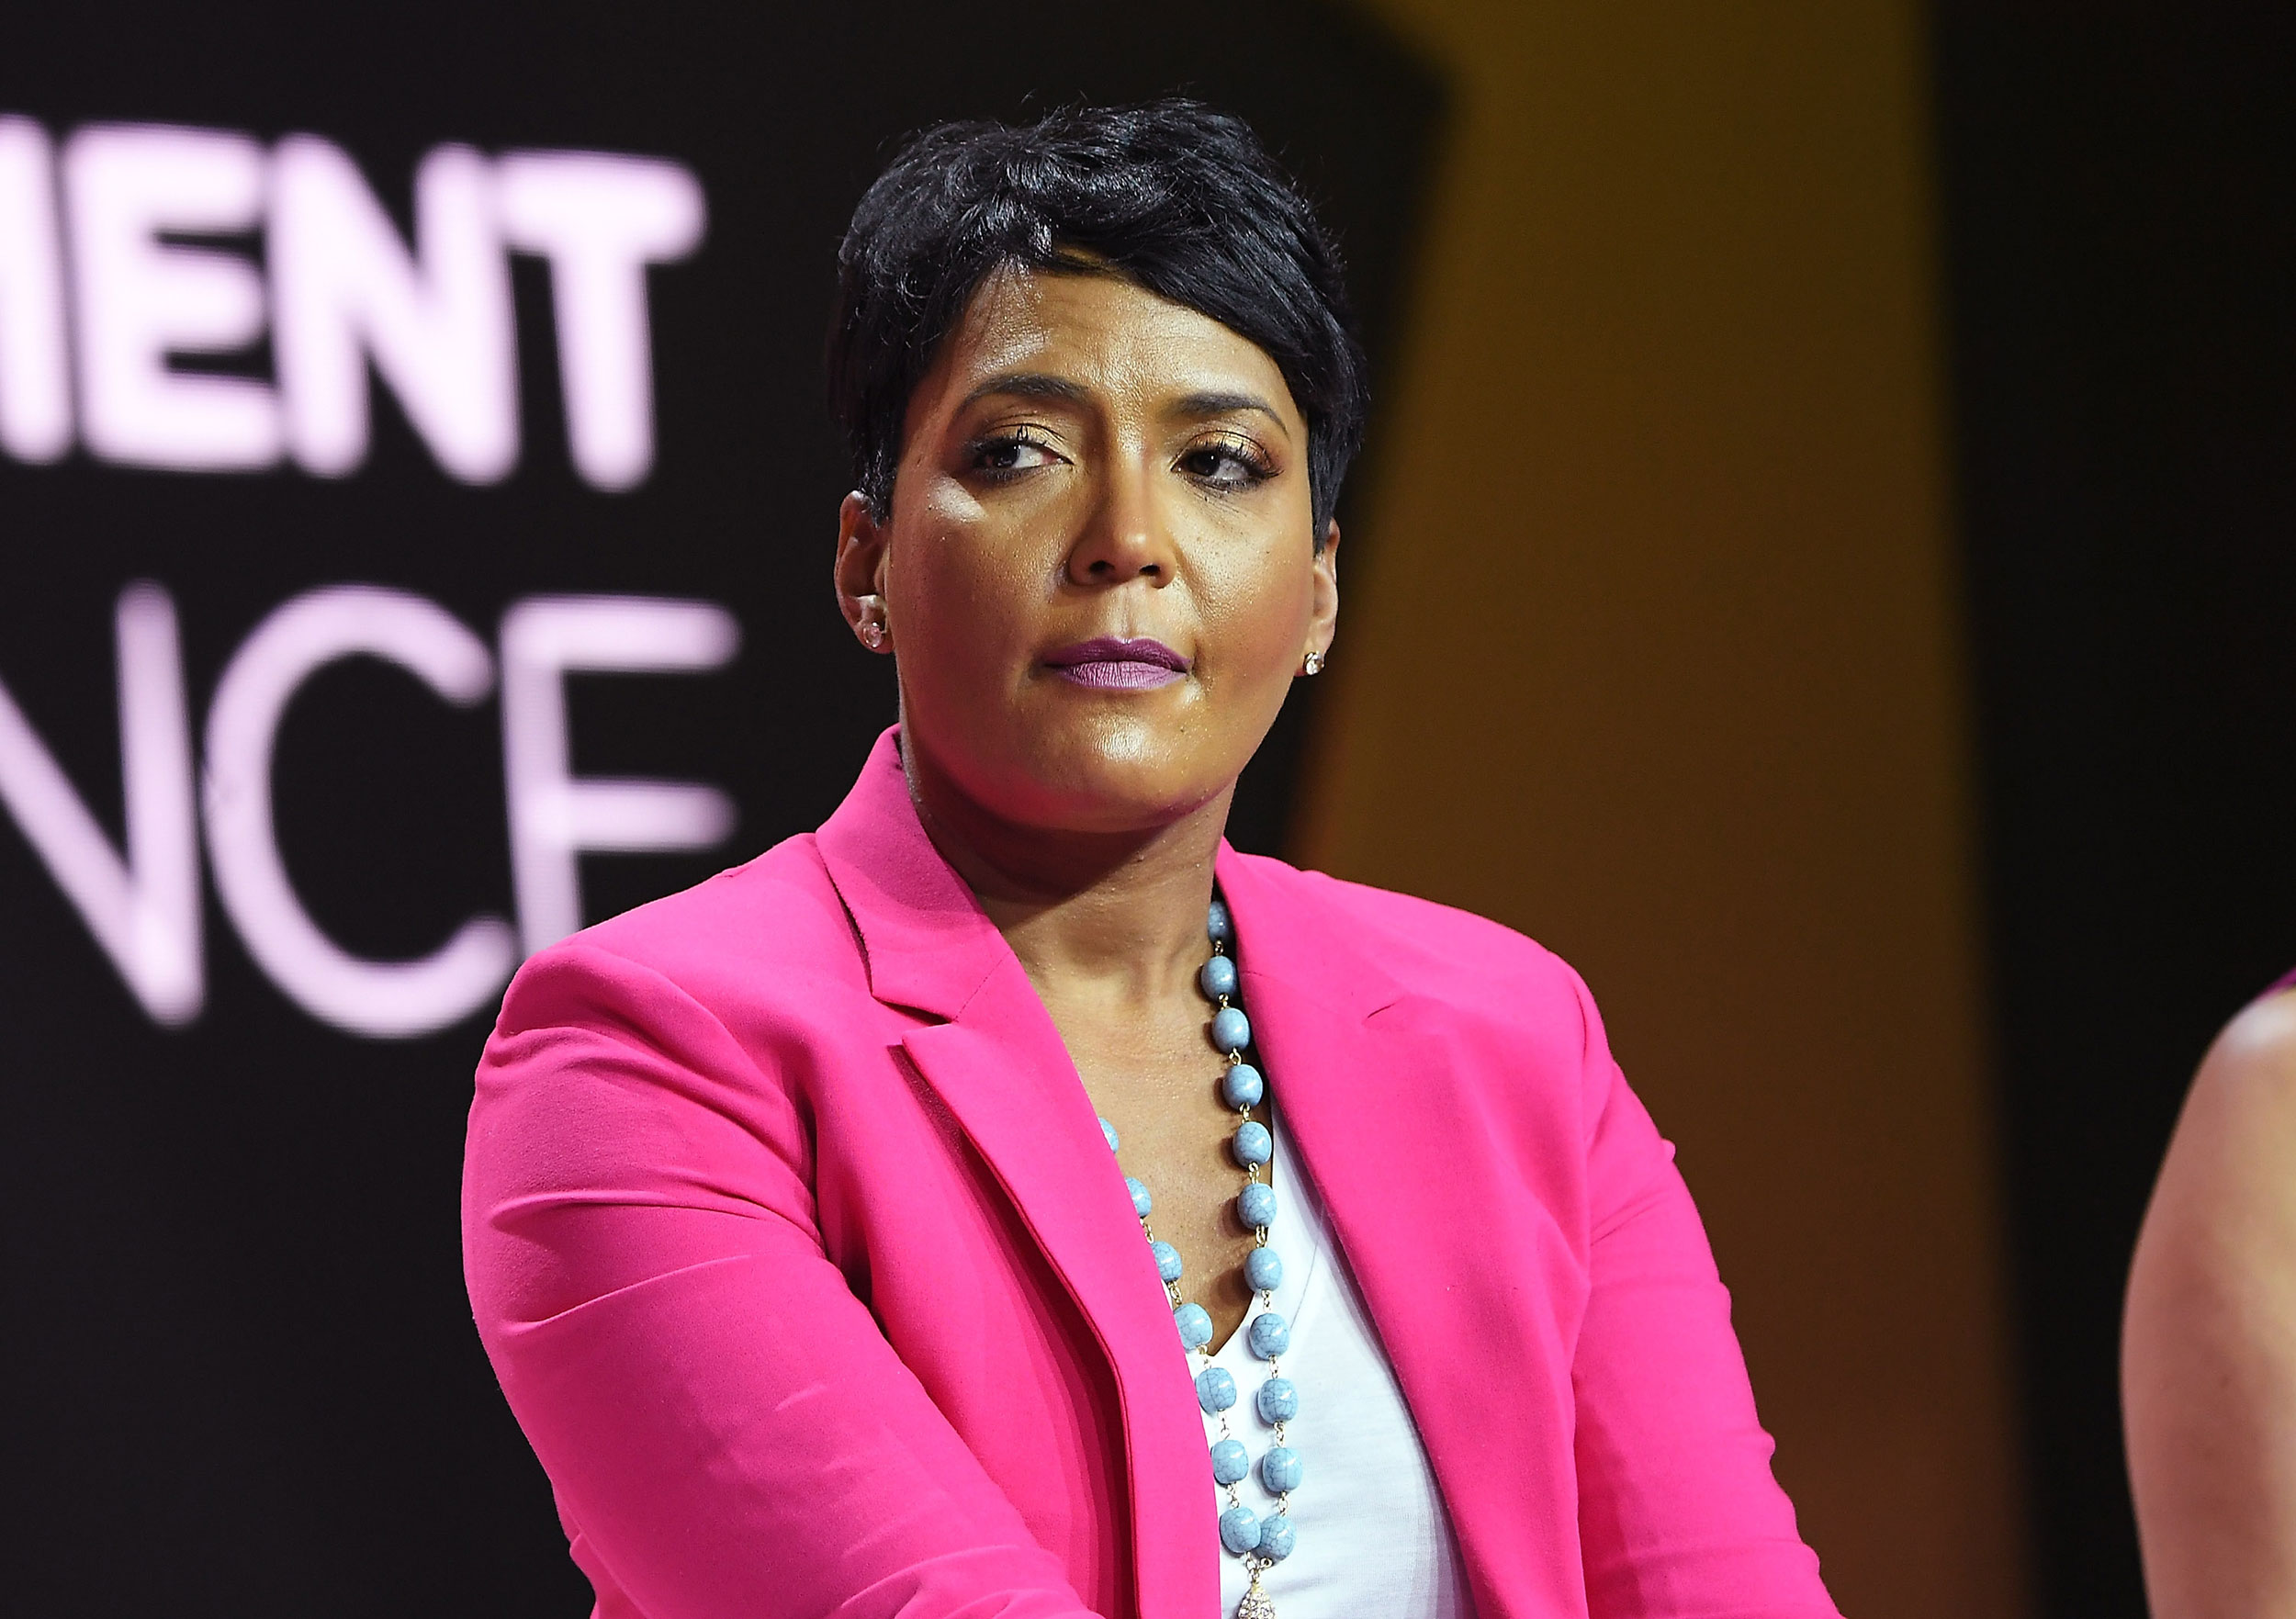 Atlanta Mayor Keisha Lance Bottoms won't run for reelection